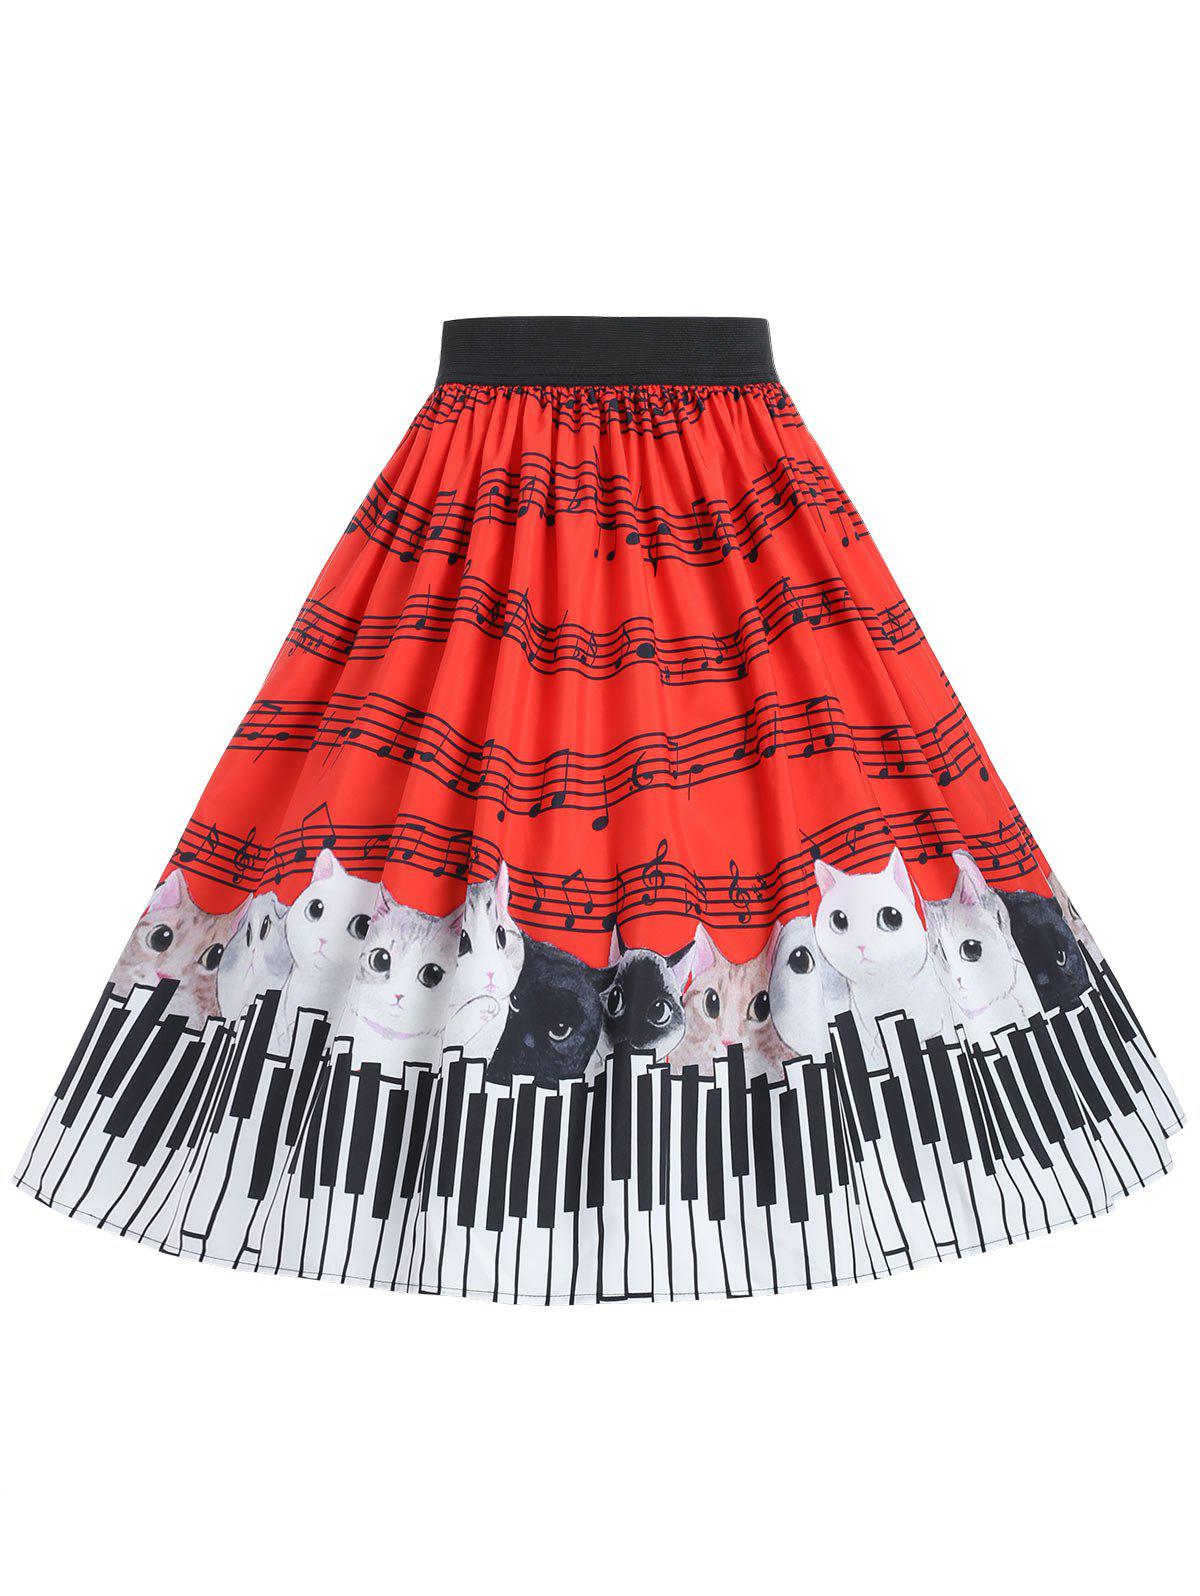 Plus Size Cat and Musical Note Skirt - RED L